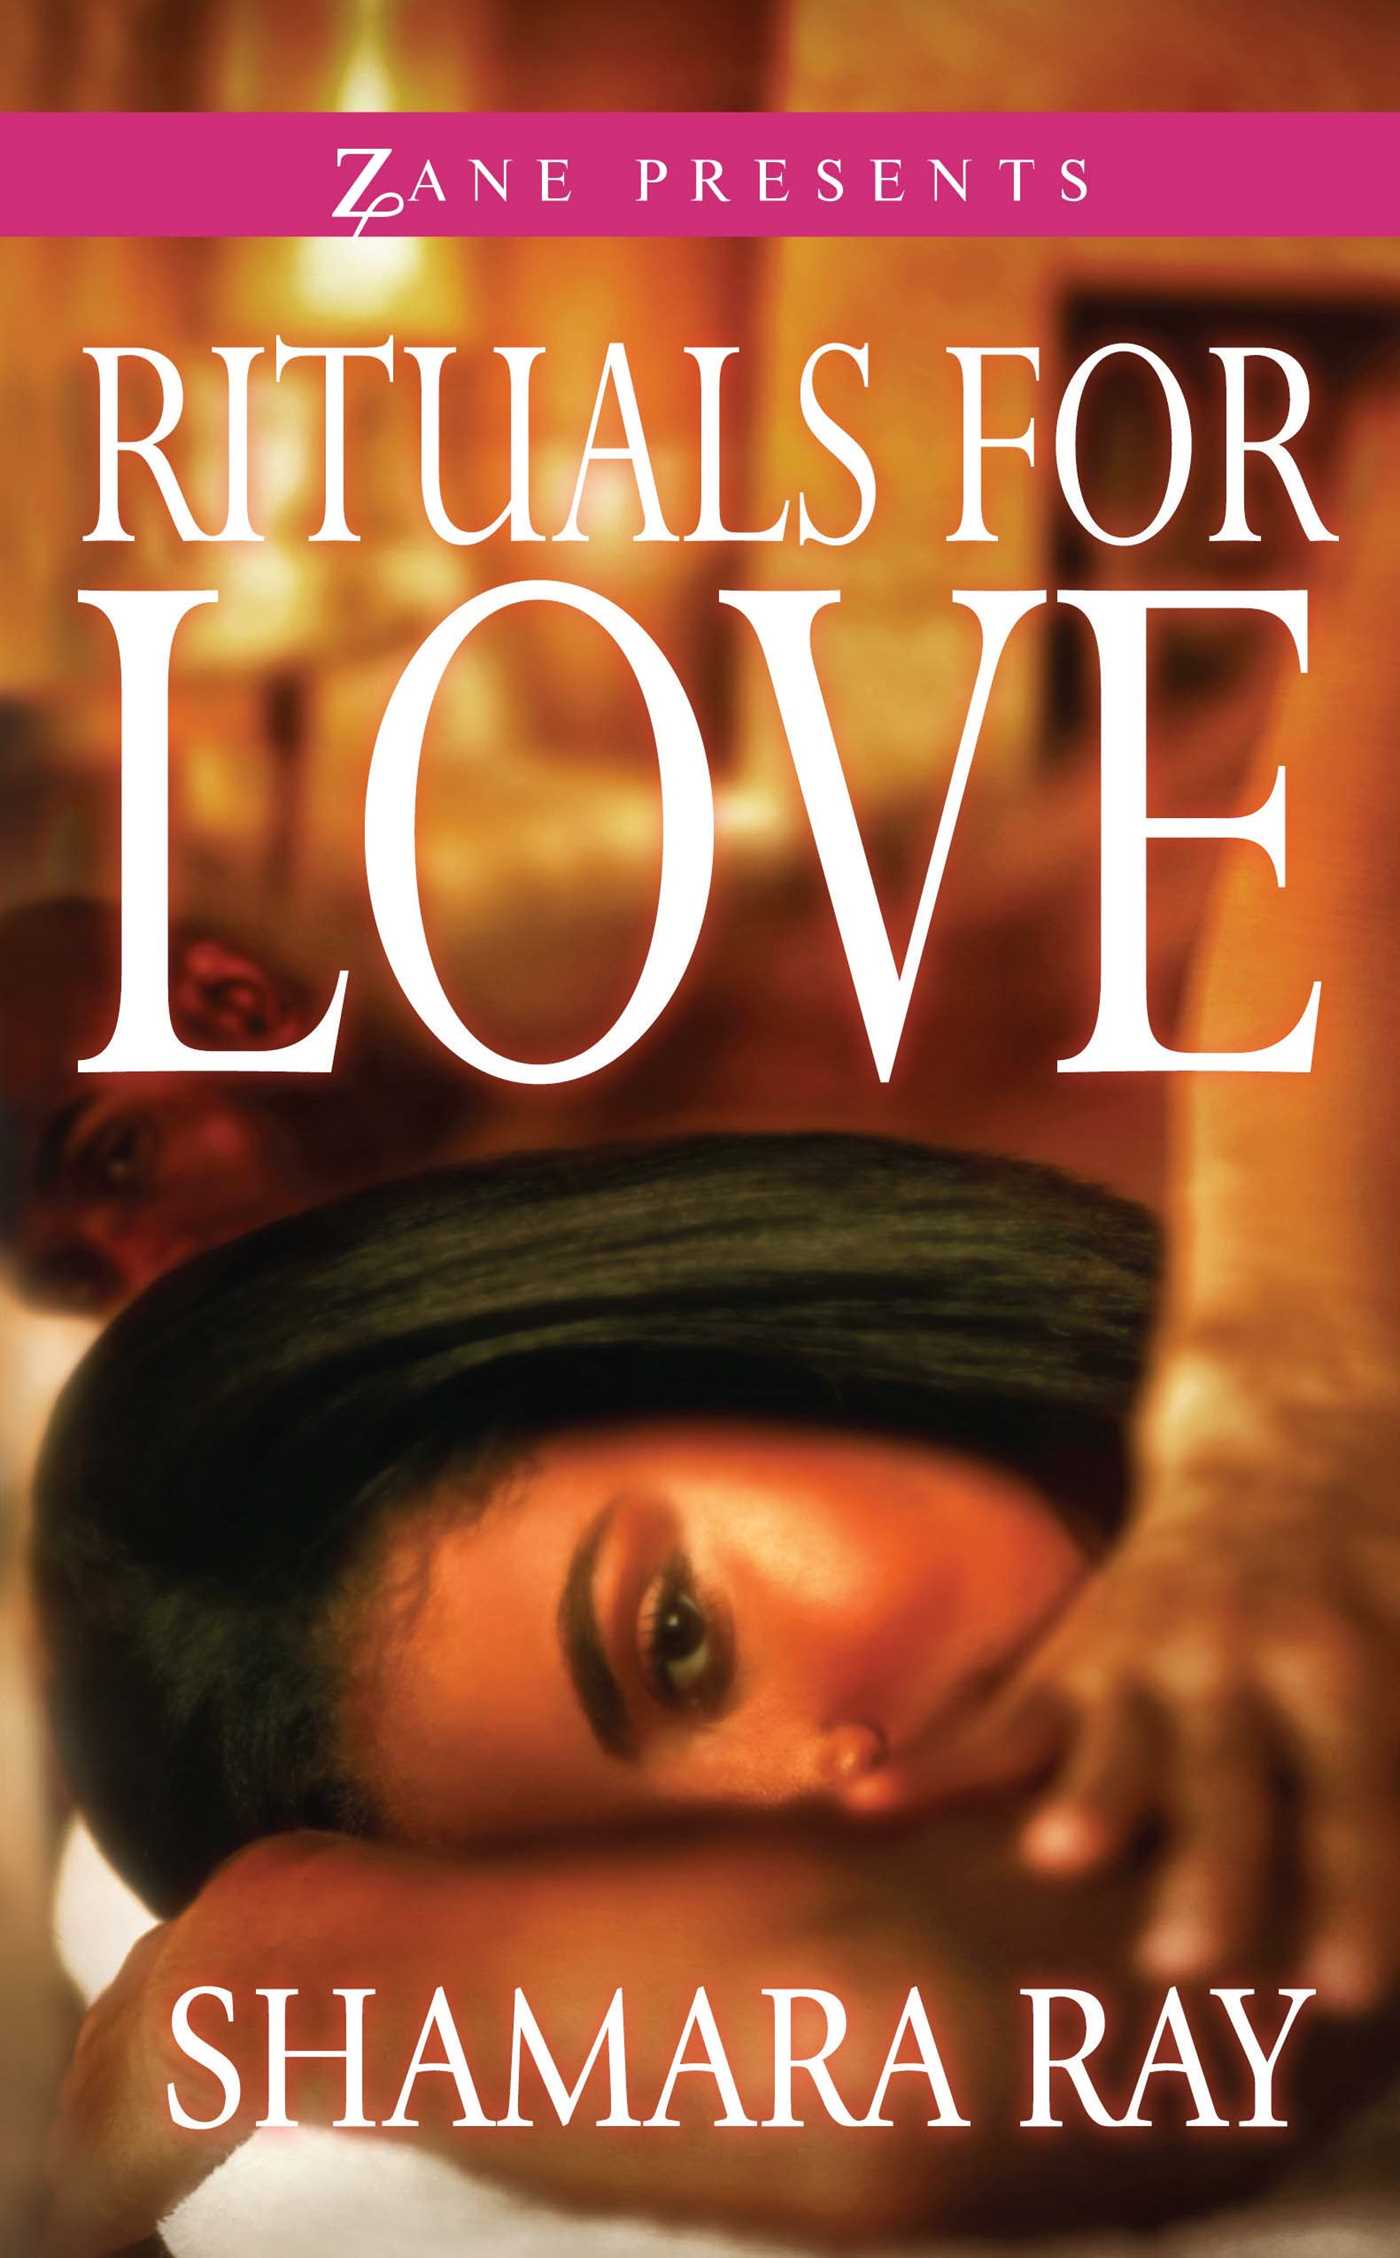 Rituals-for-love-9781593095864_hr